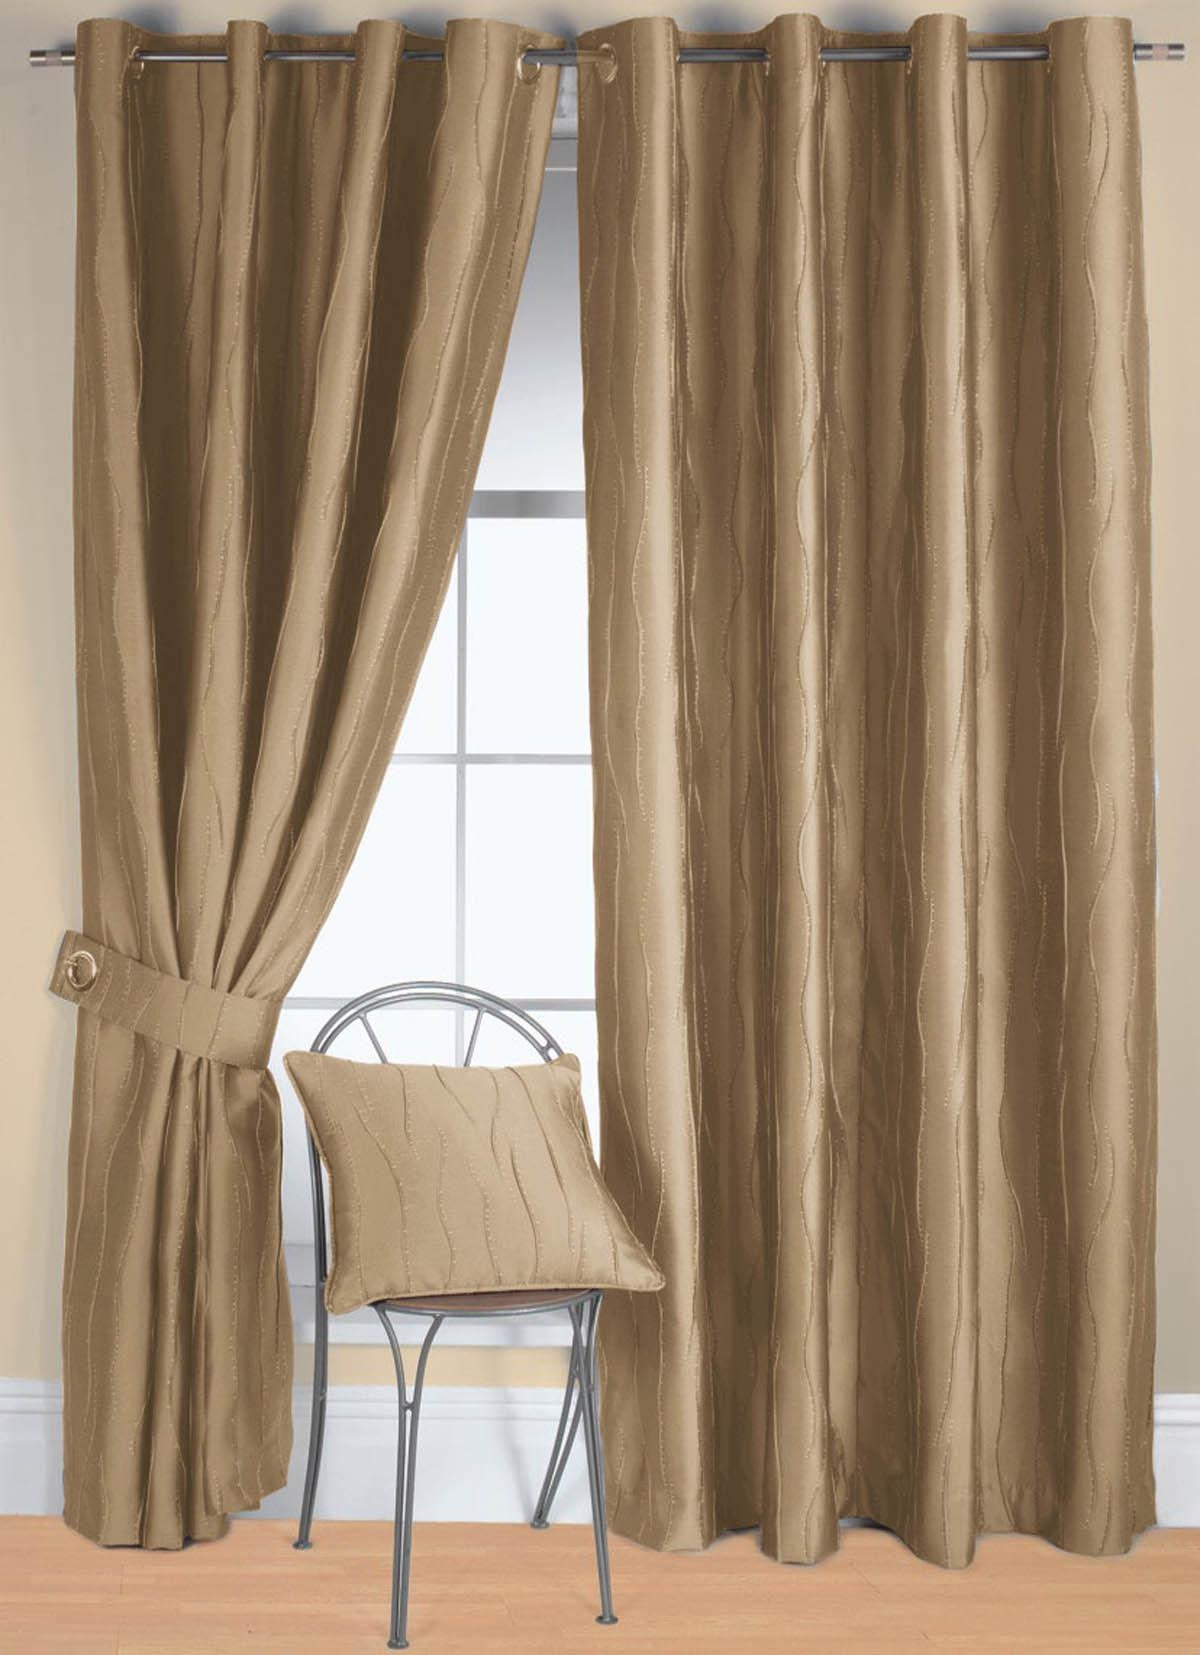 Linen Blackout Curtains 108 Business For Curtains Decoration Throughout Plain Linen Curtains (Image 10 of 15)